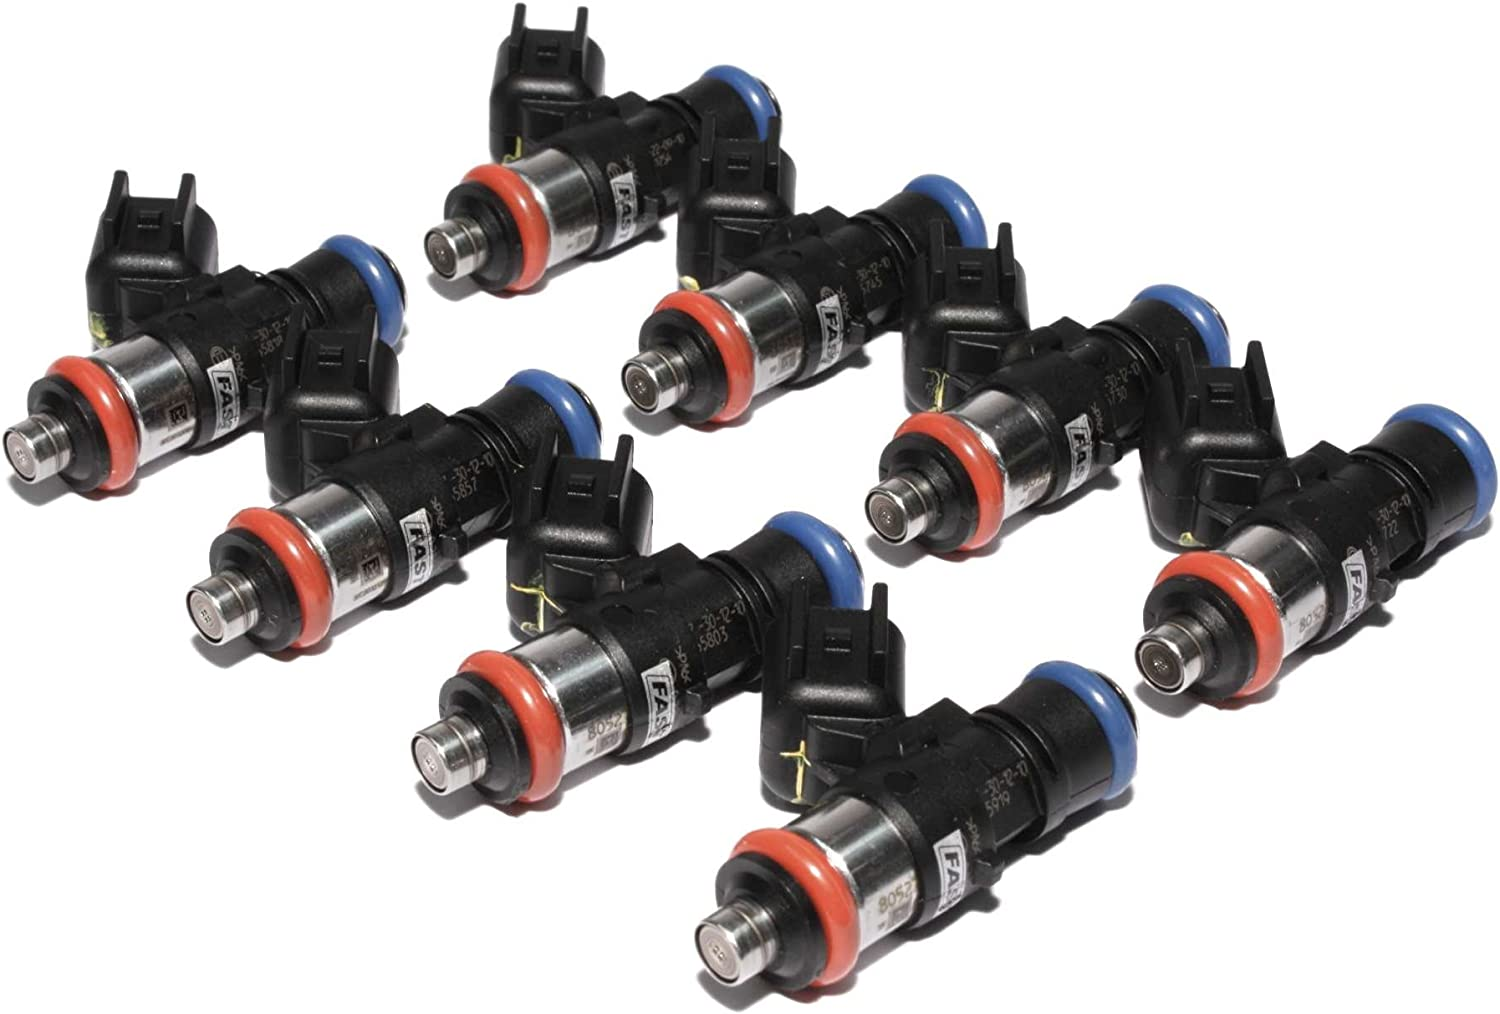 FAST 30859-8 Precision-Flow 87.8 lb//hr 960.8cc//min High-Impedance Fuel Injector for LS2, Set of 8